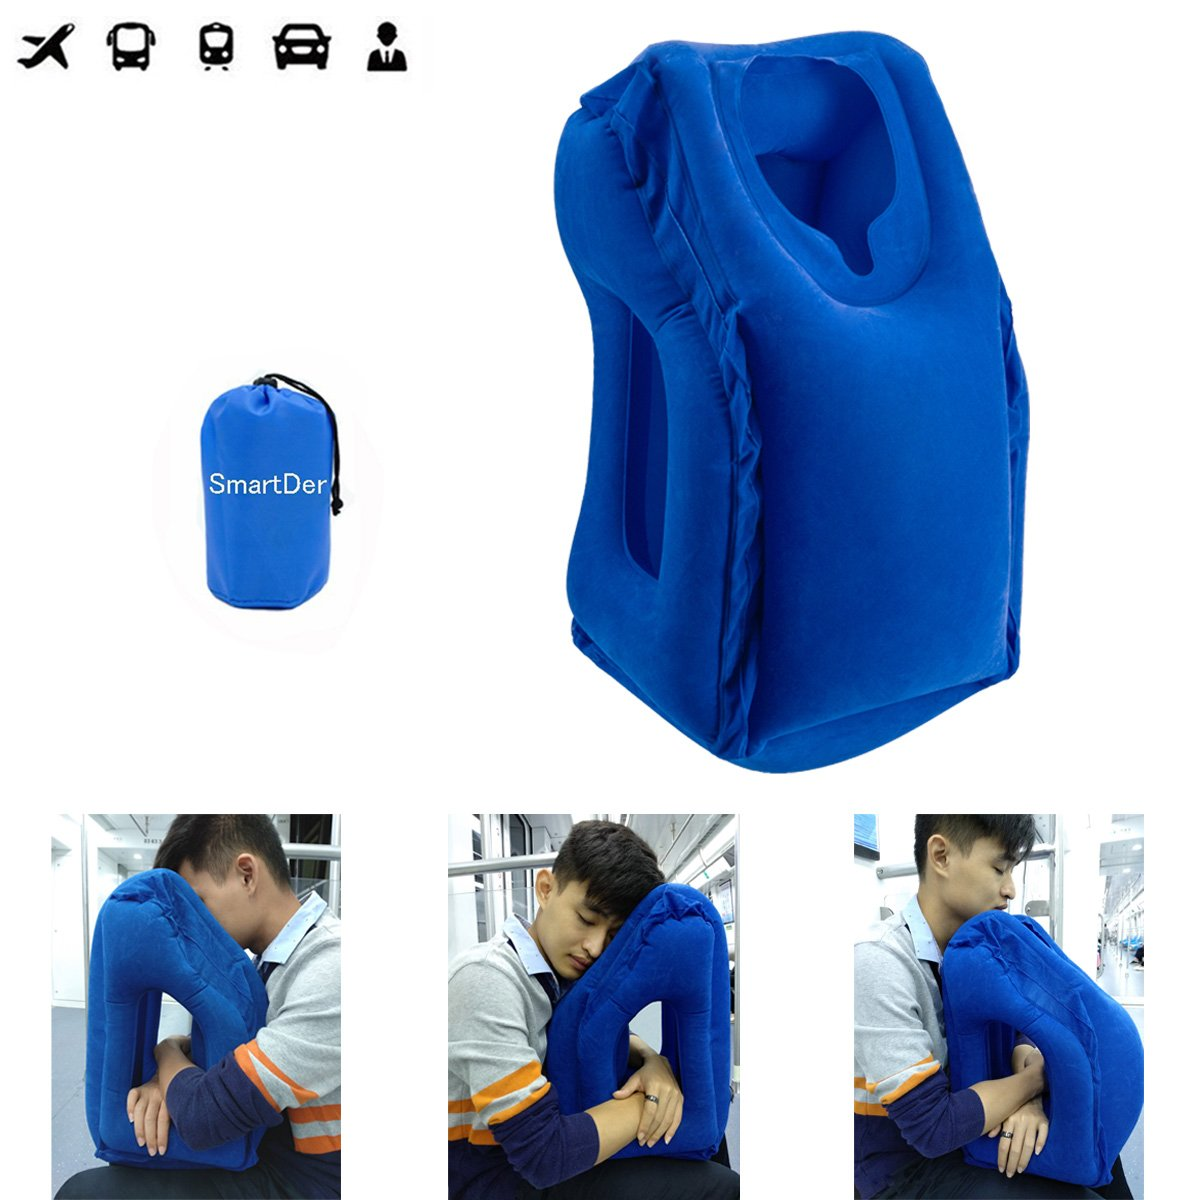 Inflatable Travel Pillow, SmartDer Airplane Pillow, Neck Pillow for Airplane Travel, Travel Pillows for Airplanes & Office Napping with Head & Neck Support (Blue)